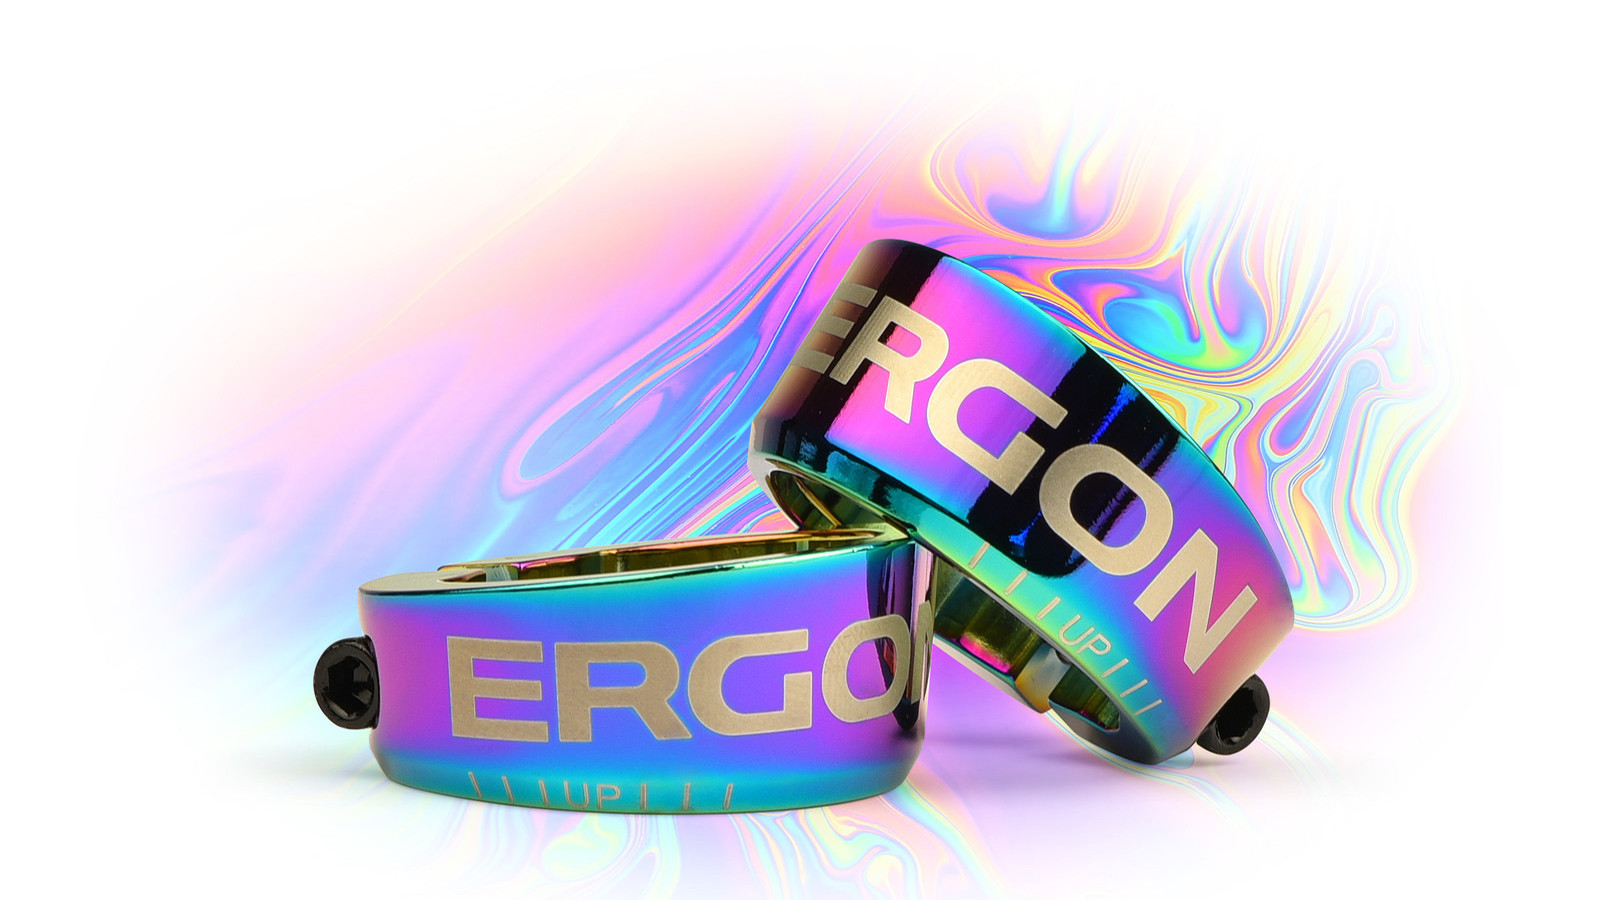 Have ERGON Grips? Want to Spice them Up? Time for Some Oil Slick Grip Clamps